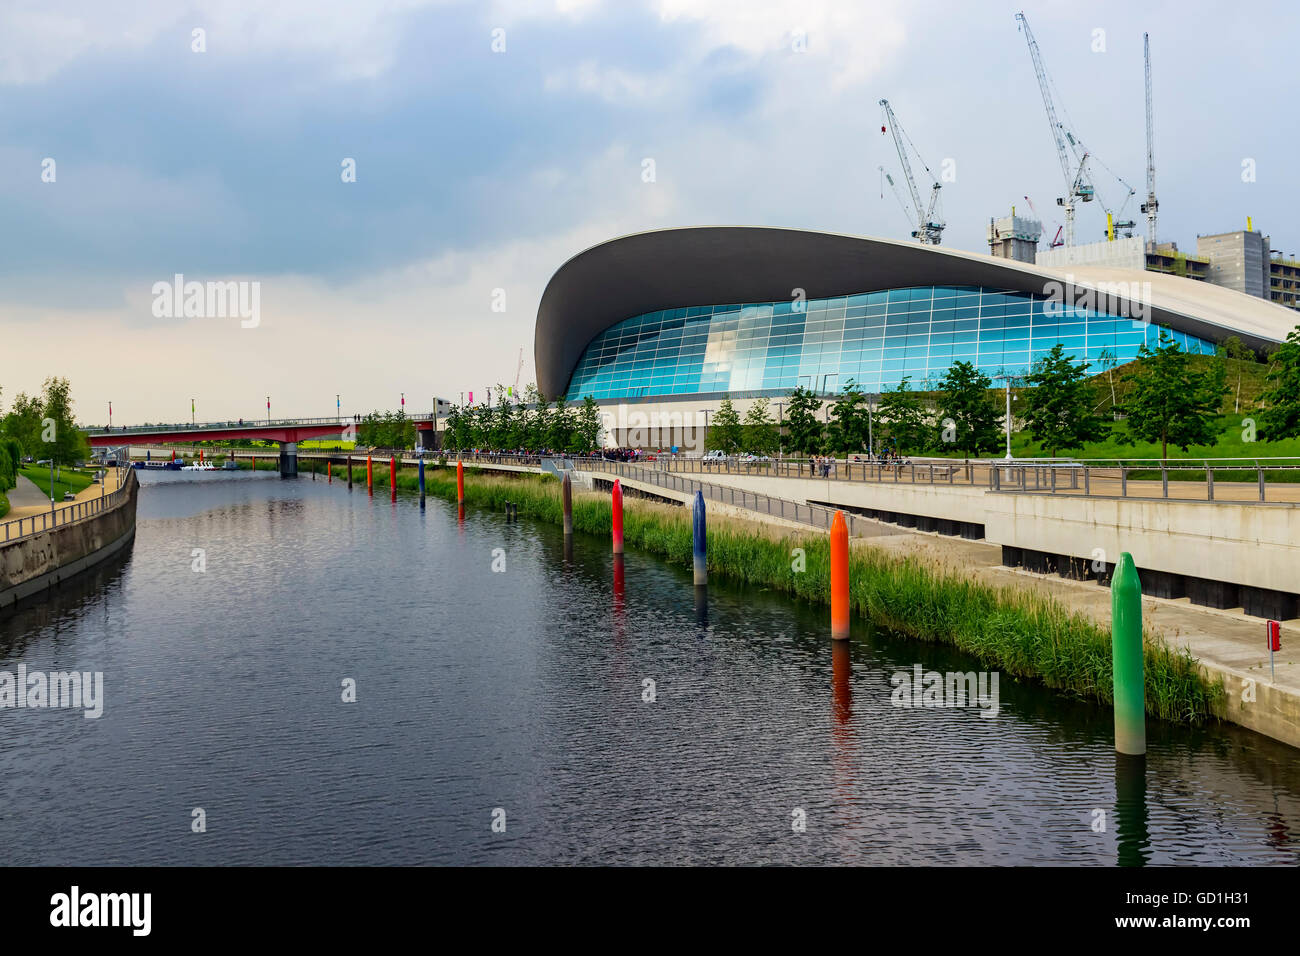 Aquatics centre london olympic swimming stock photos - Queen elizabeth olympic park swimming pool ...